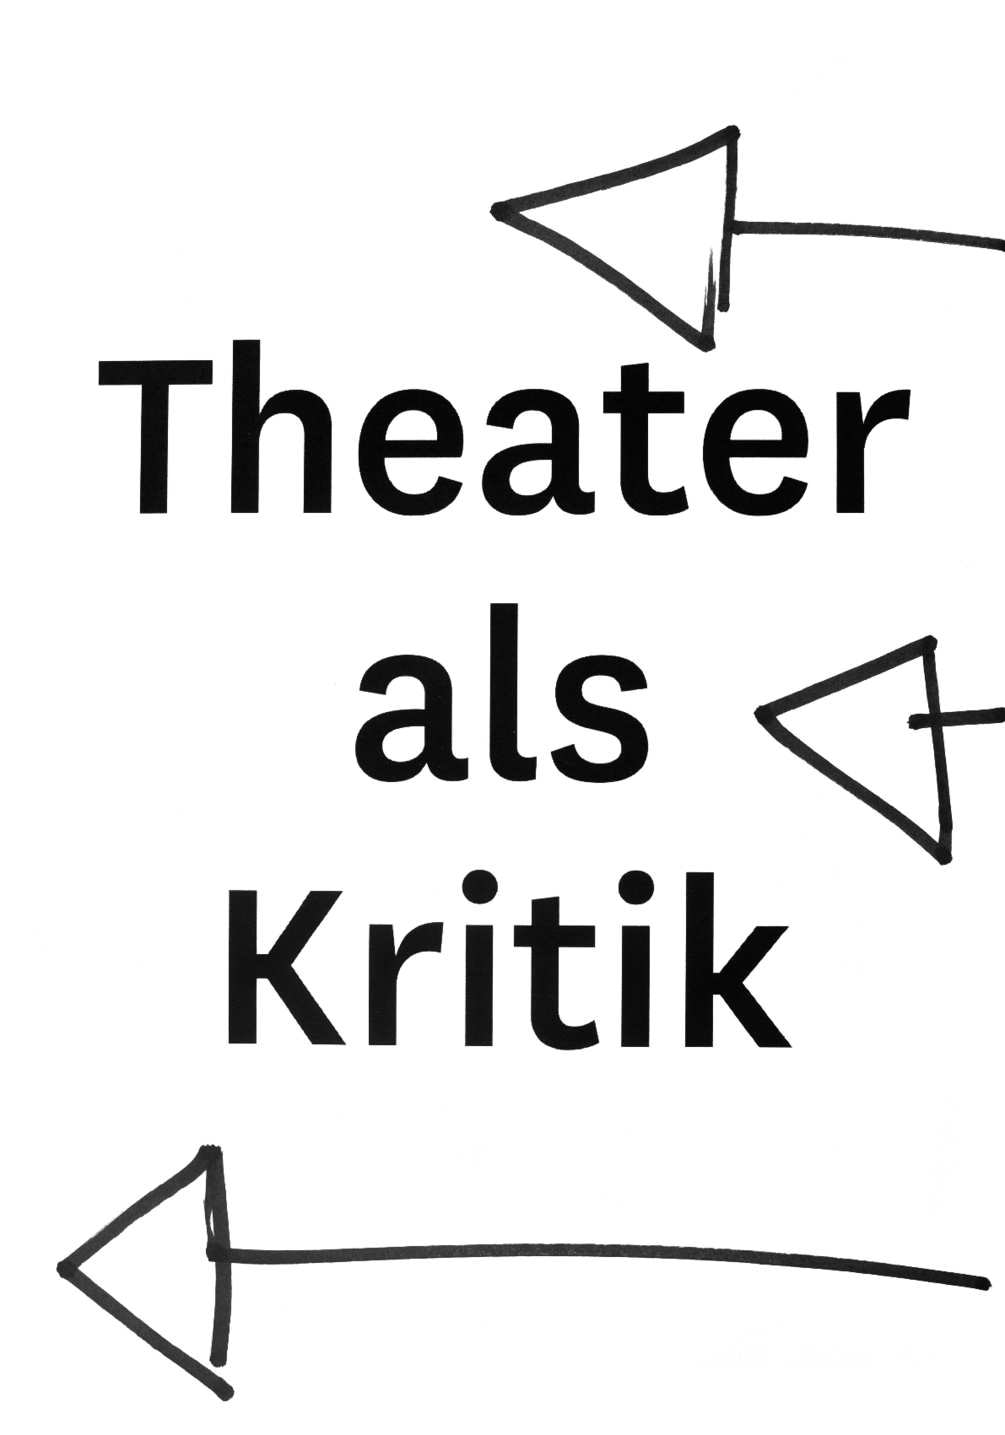 theater-as-critique-slip-30-1005x1435px